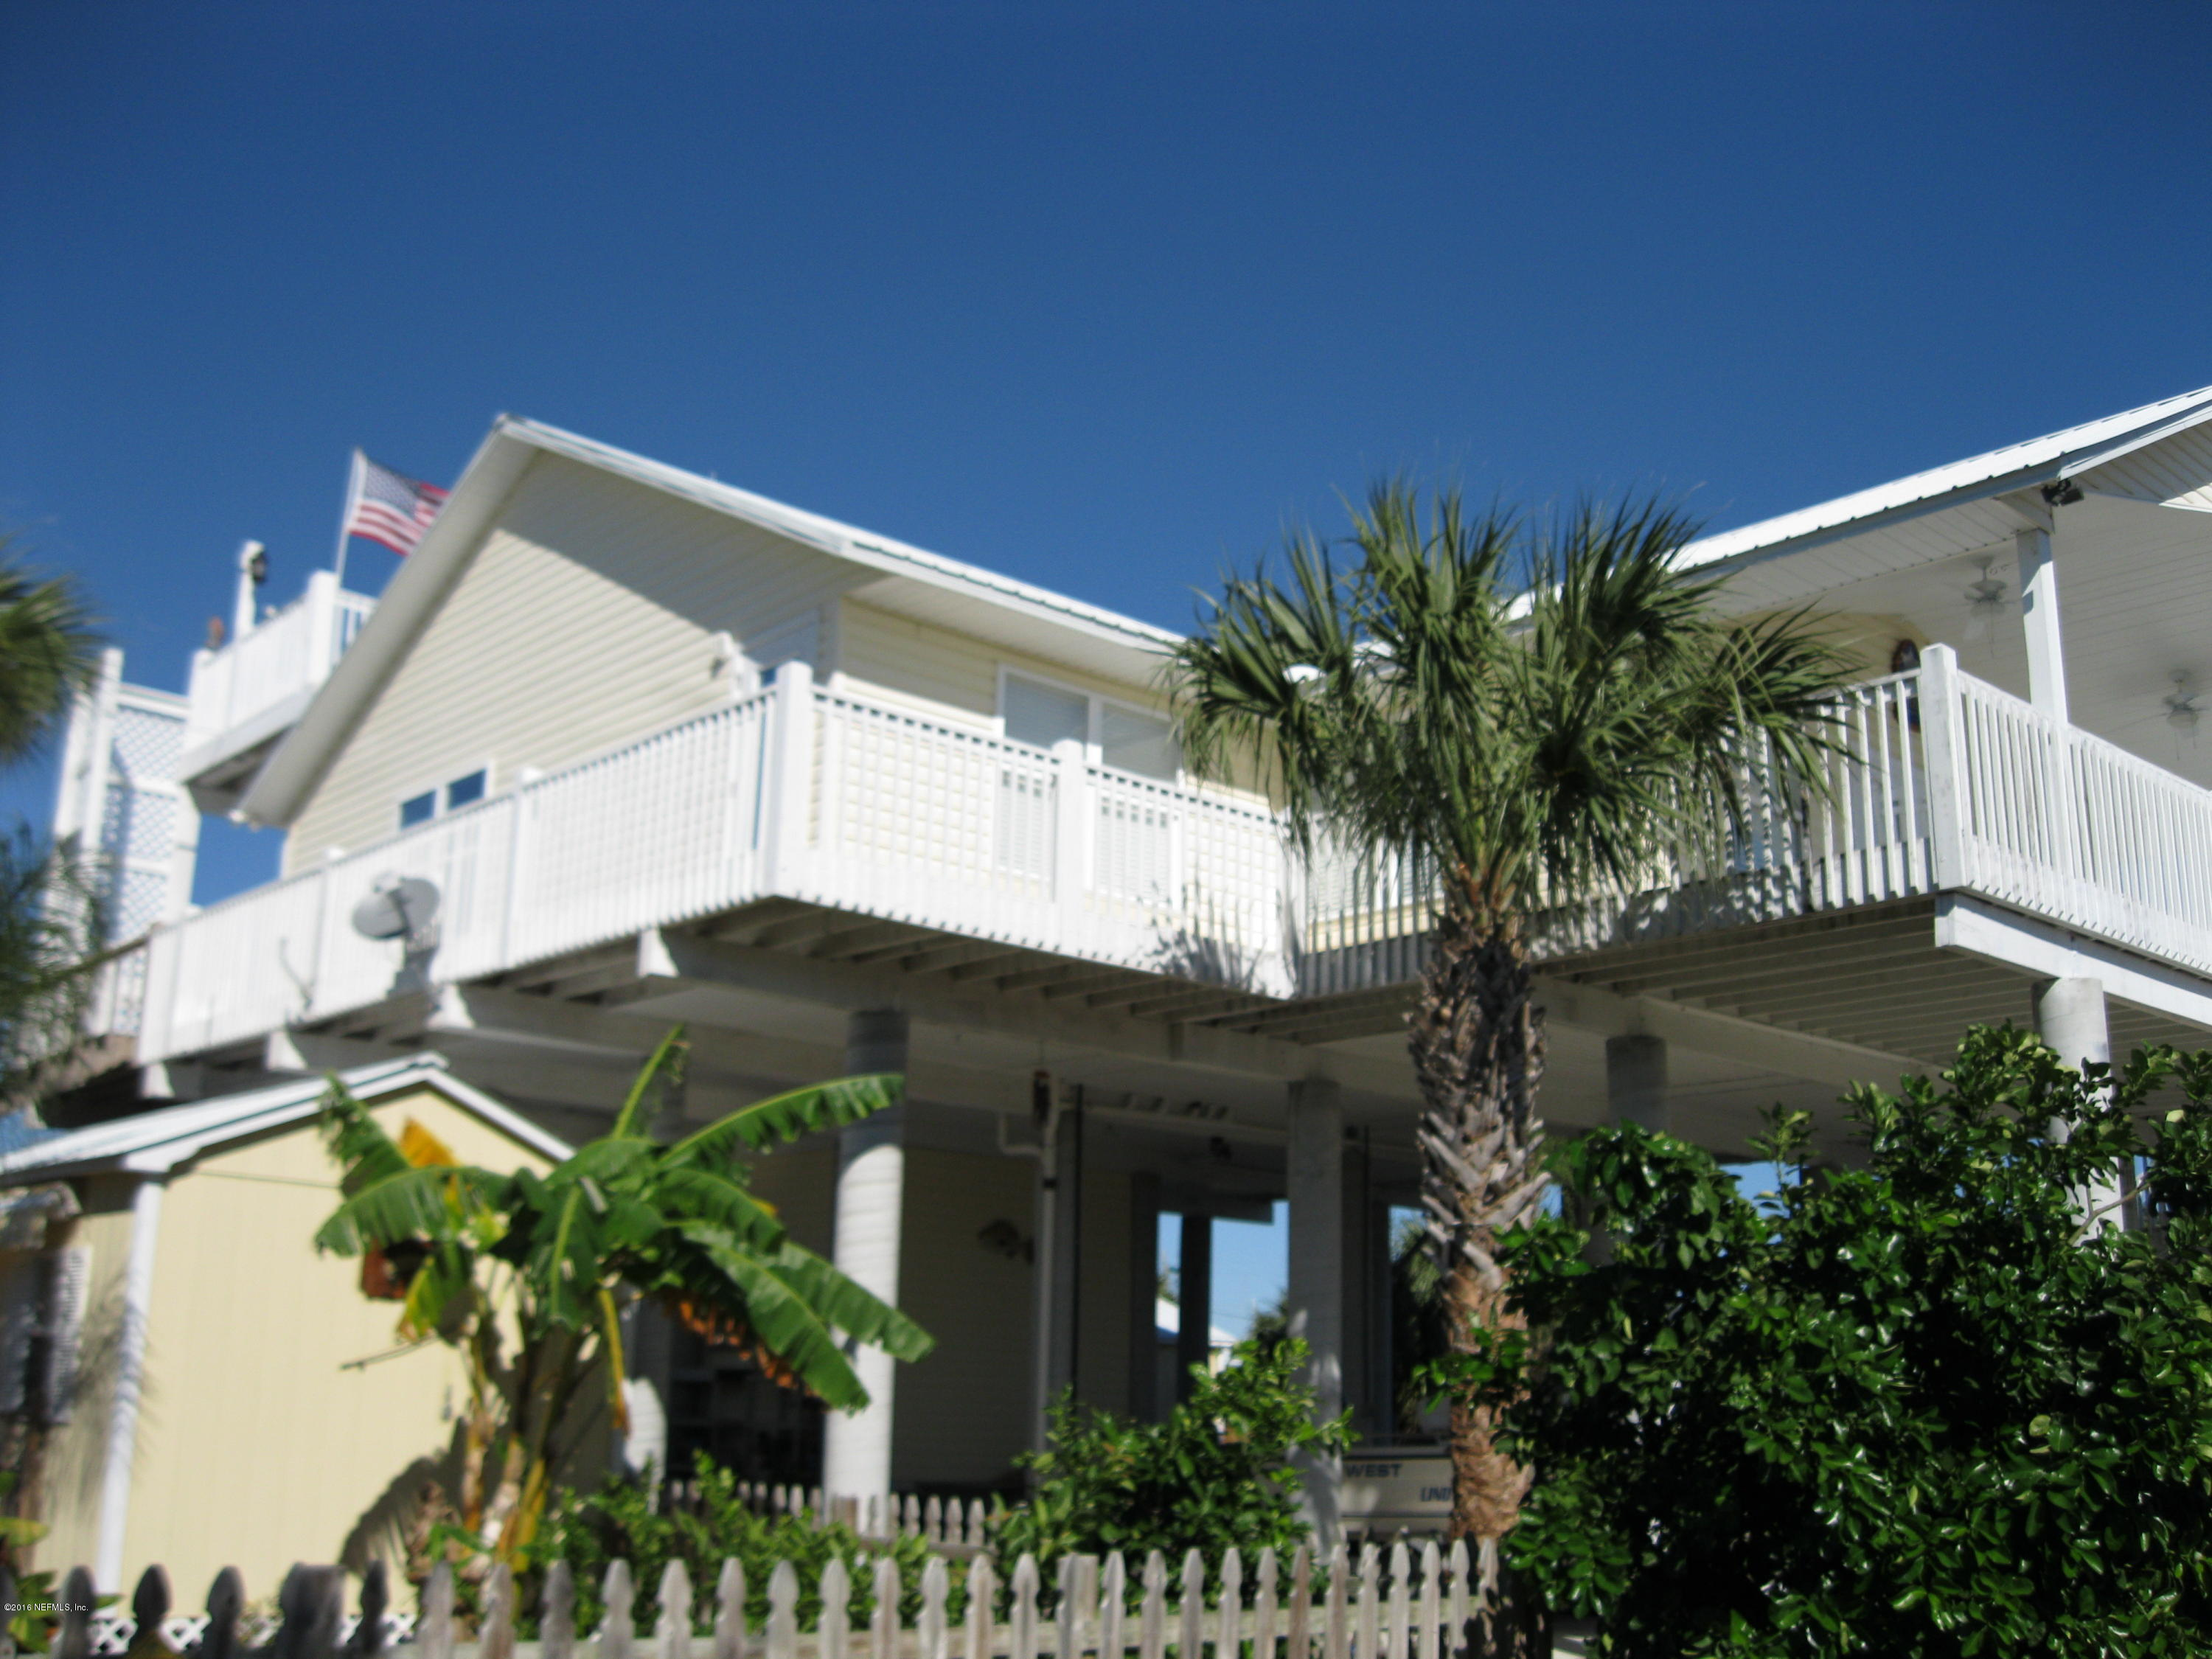 104 10TH, HORSESHOE BEACH, FLORIDA 32648, 3 Bedrooms Bedrooms, ,3 BathroomsBathrooms,Residential - single family,For sale,10TH,827078